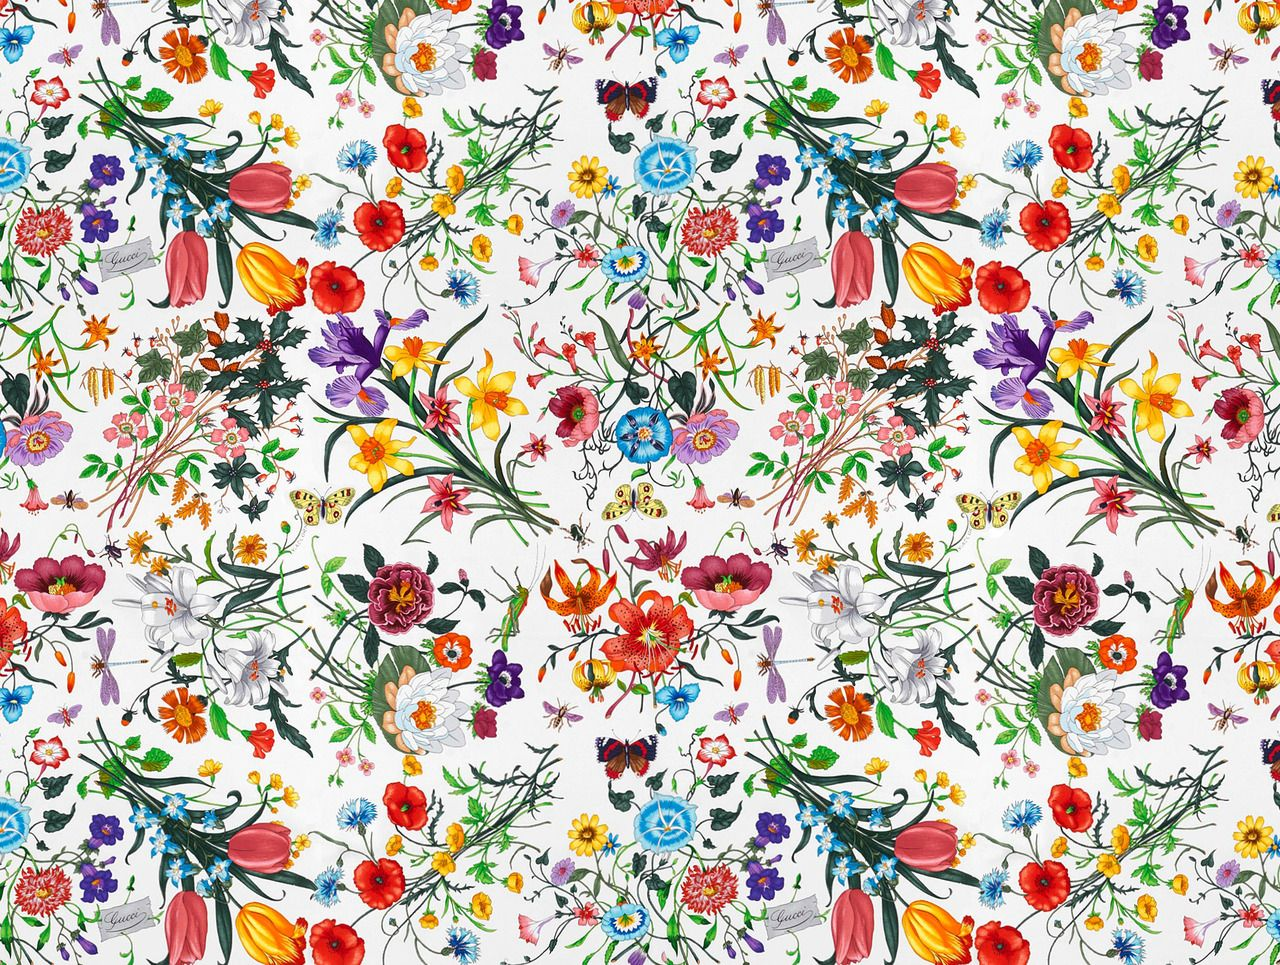 Pin by lindsay on Textile Floral prints Gucci floral